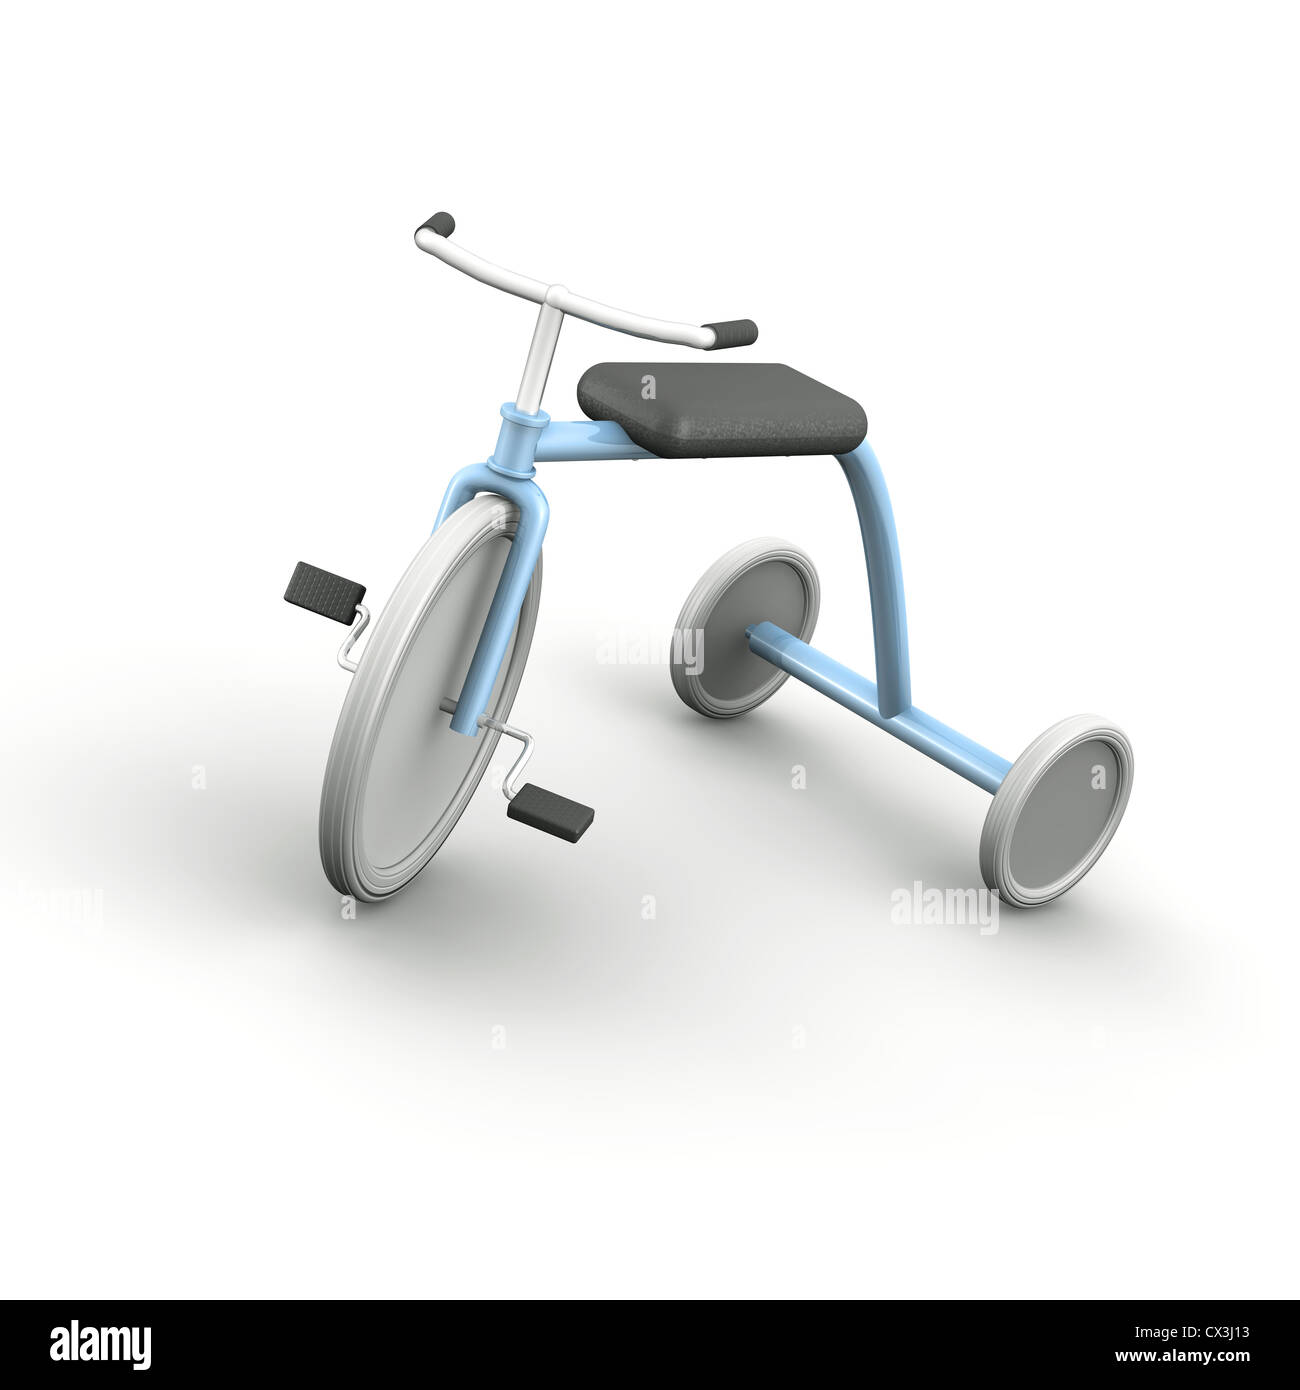 Hellblaues Retro Dreirad mit weissen Reifen auf weissem Hintergrund - One blue Tricycle with white Wheels on White - Stock Image